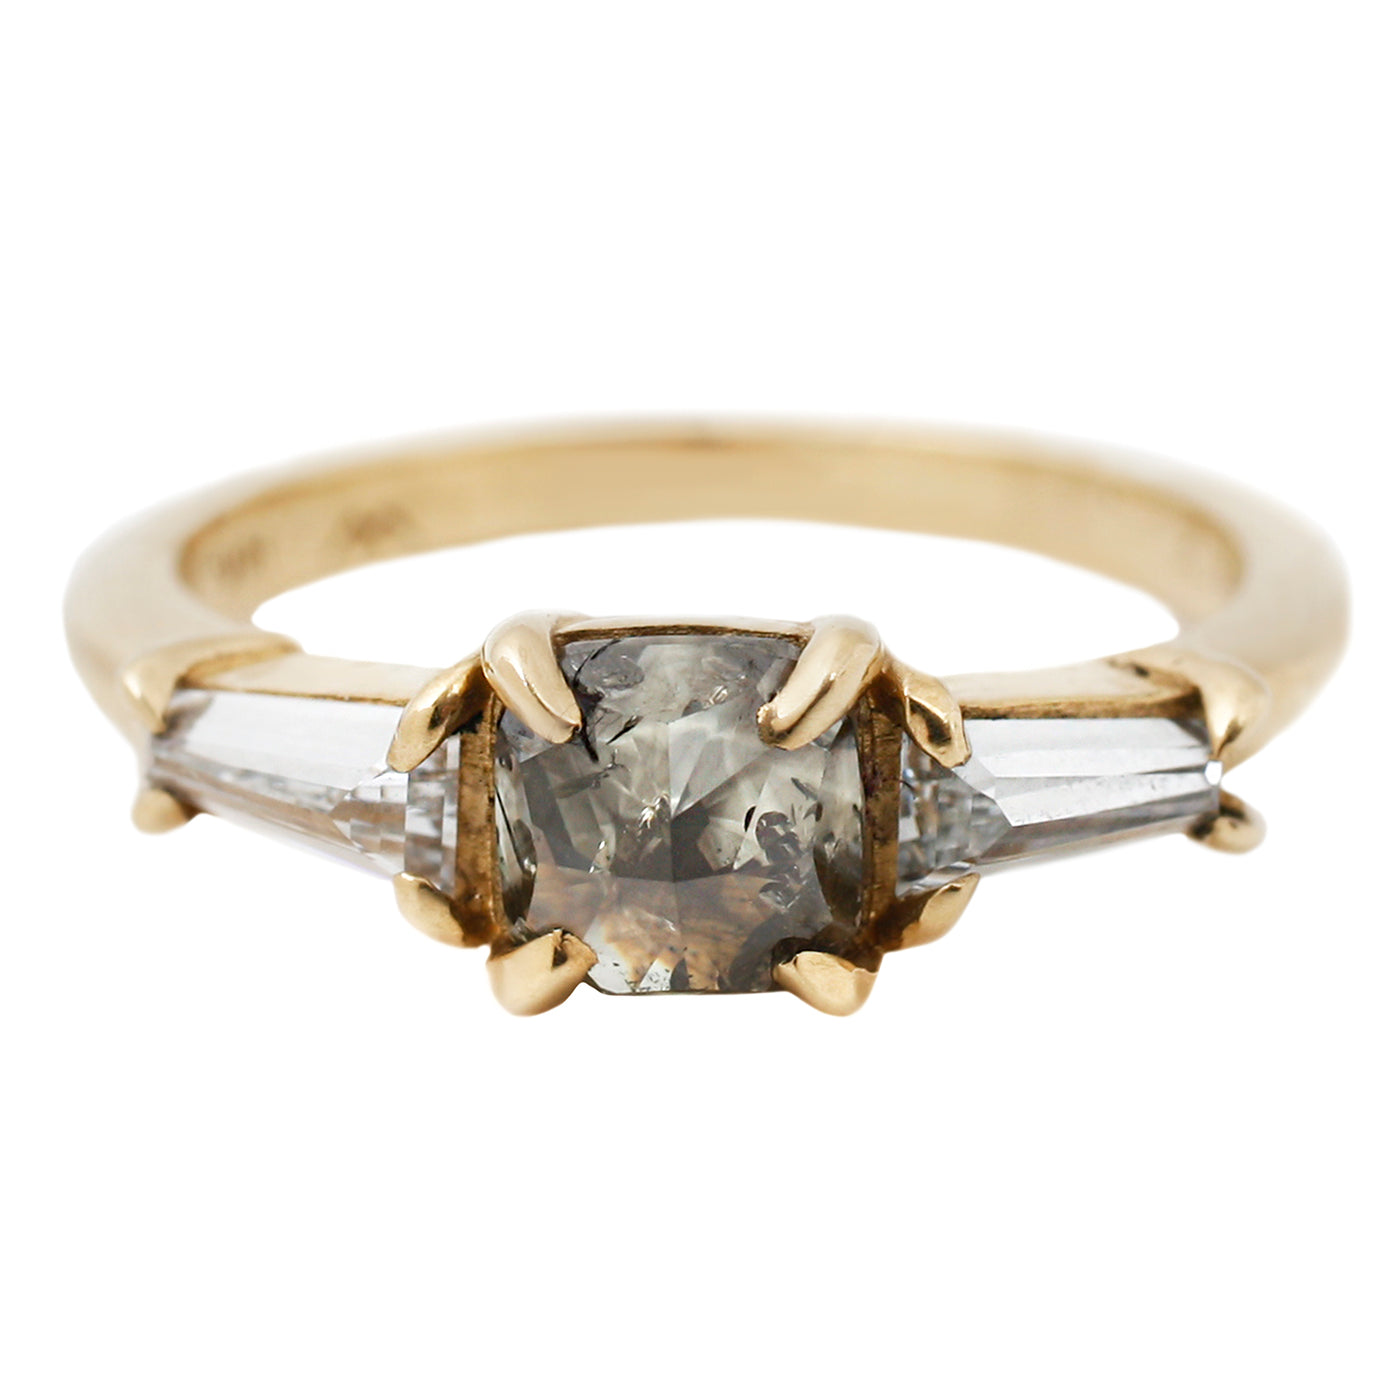 Lauren Wolf Jewelry Green Goddess Diamond Ring